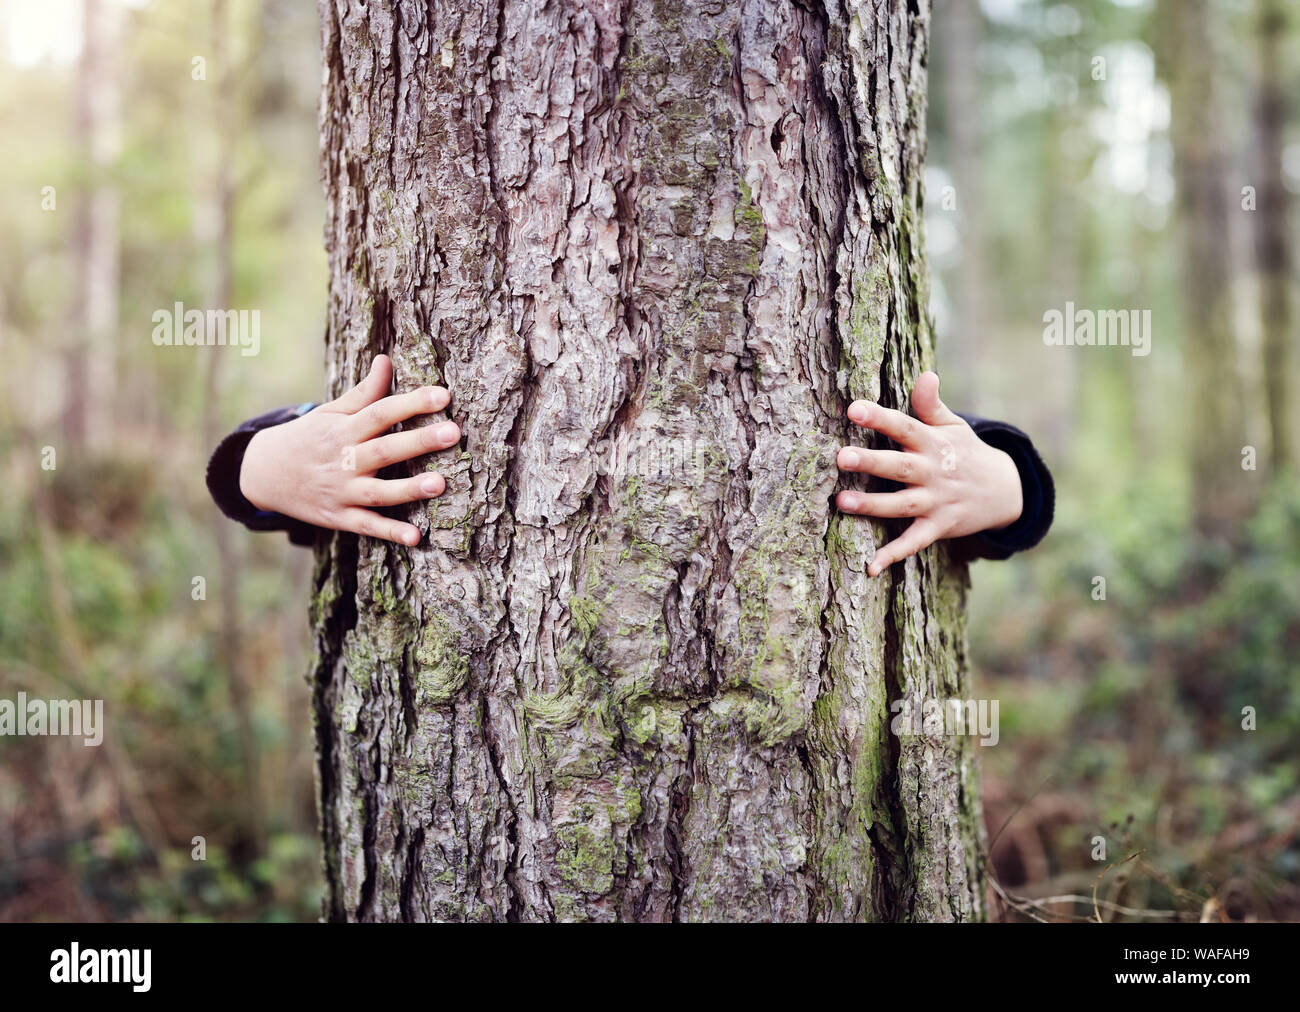 Tree hugging, little boy giving a tree a hug concept for love nature Stock Photo